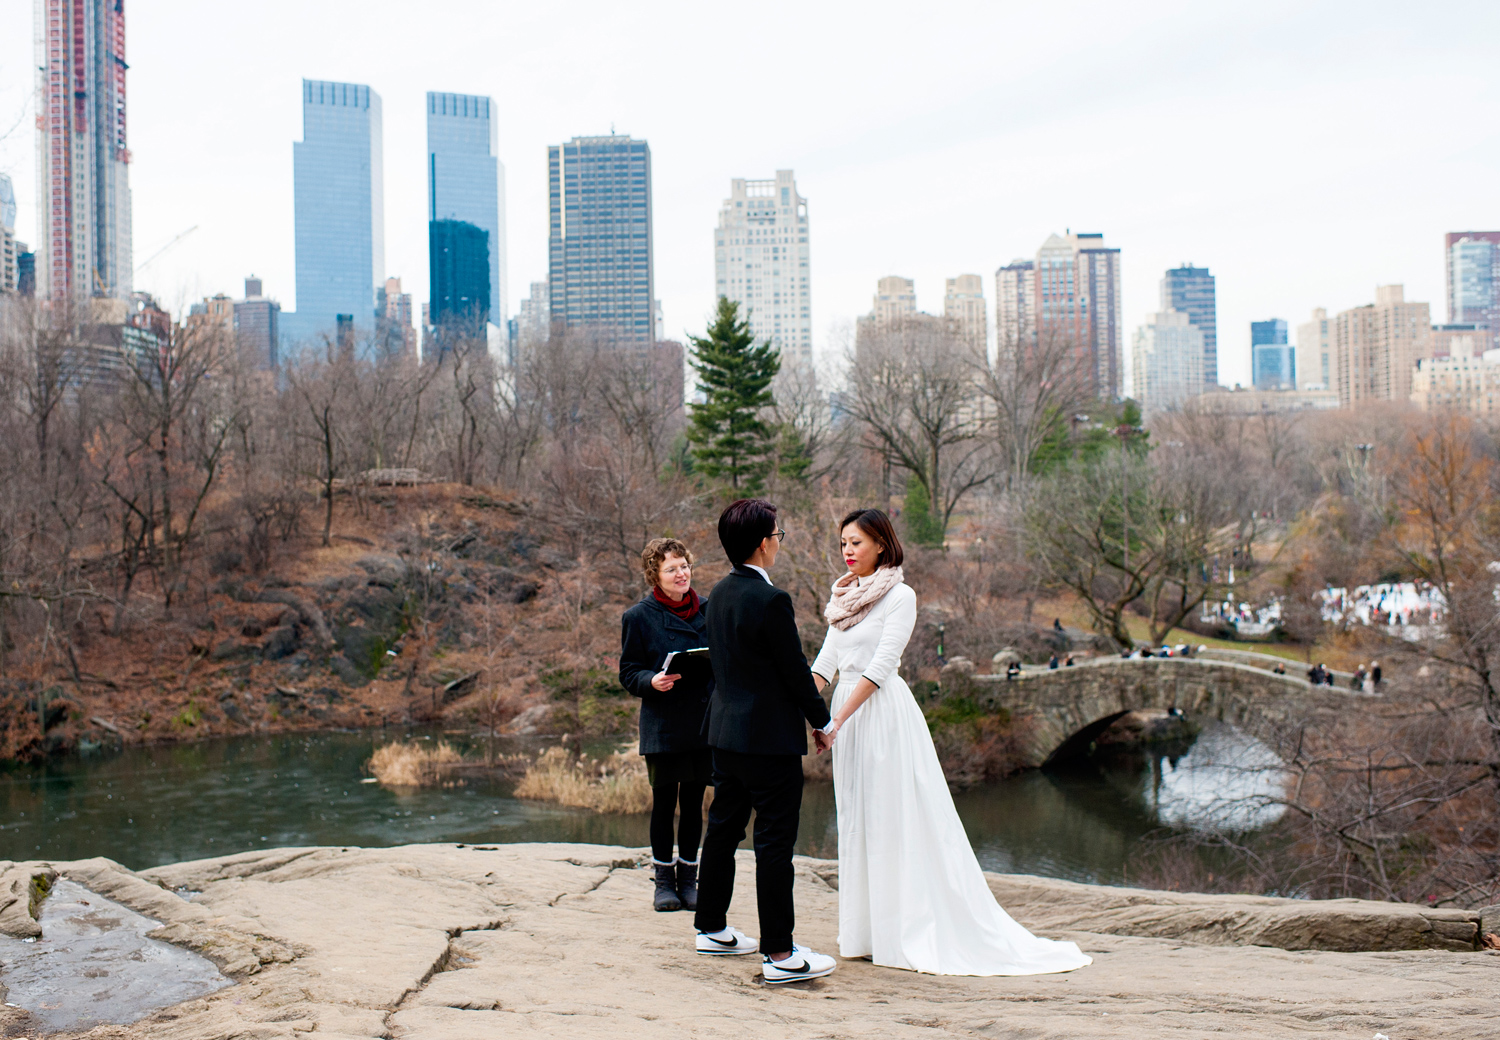 Central Park Wedding Photography: Central Park Wedding With A View